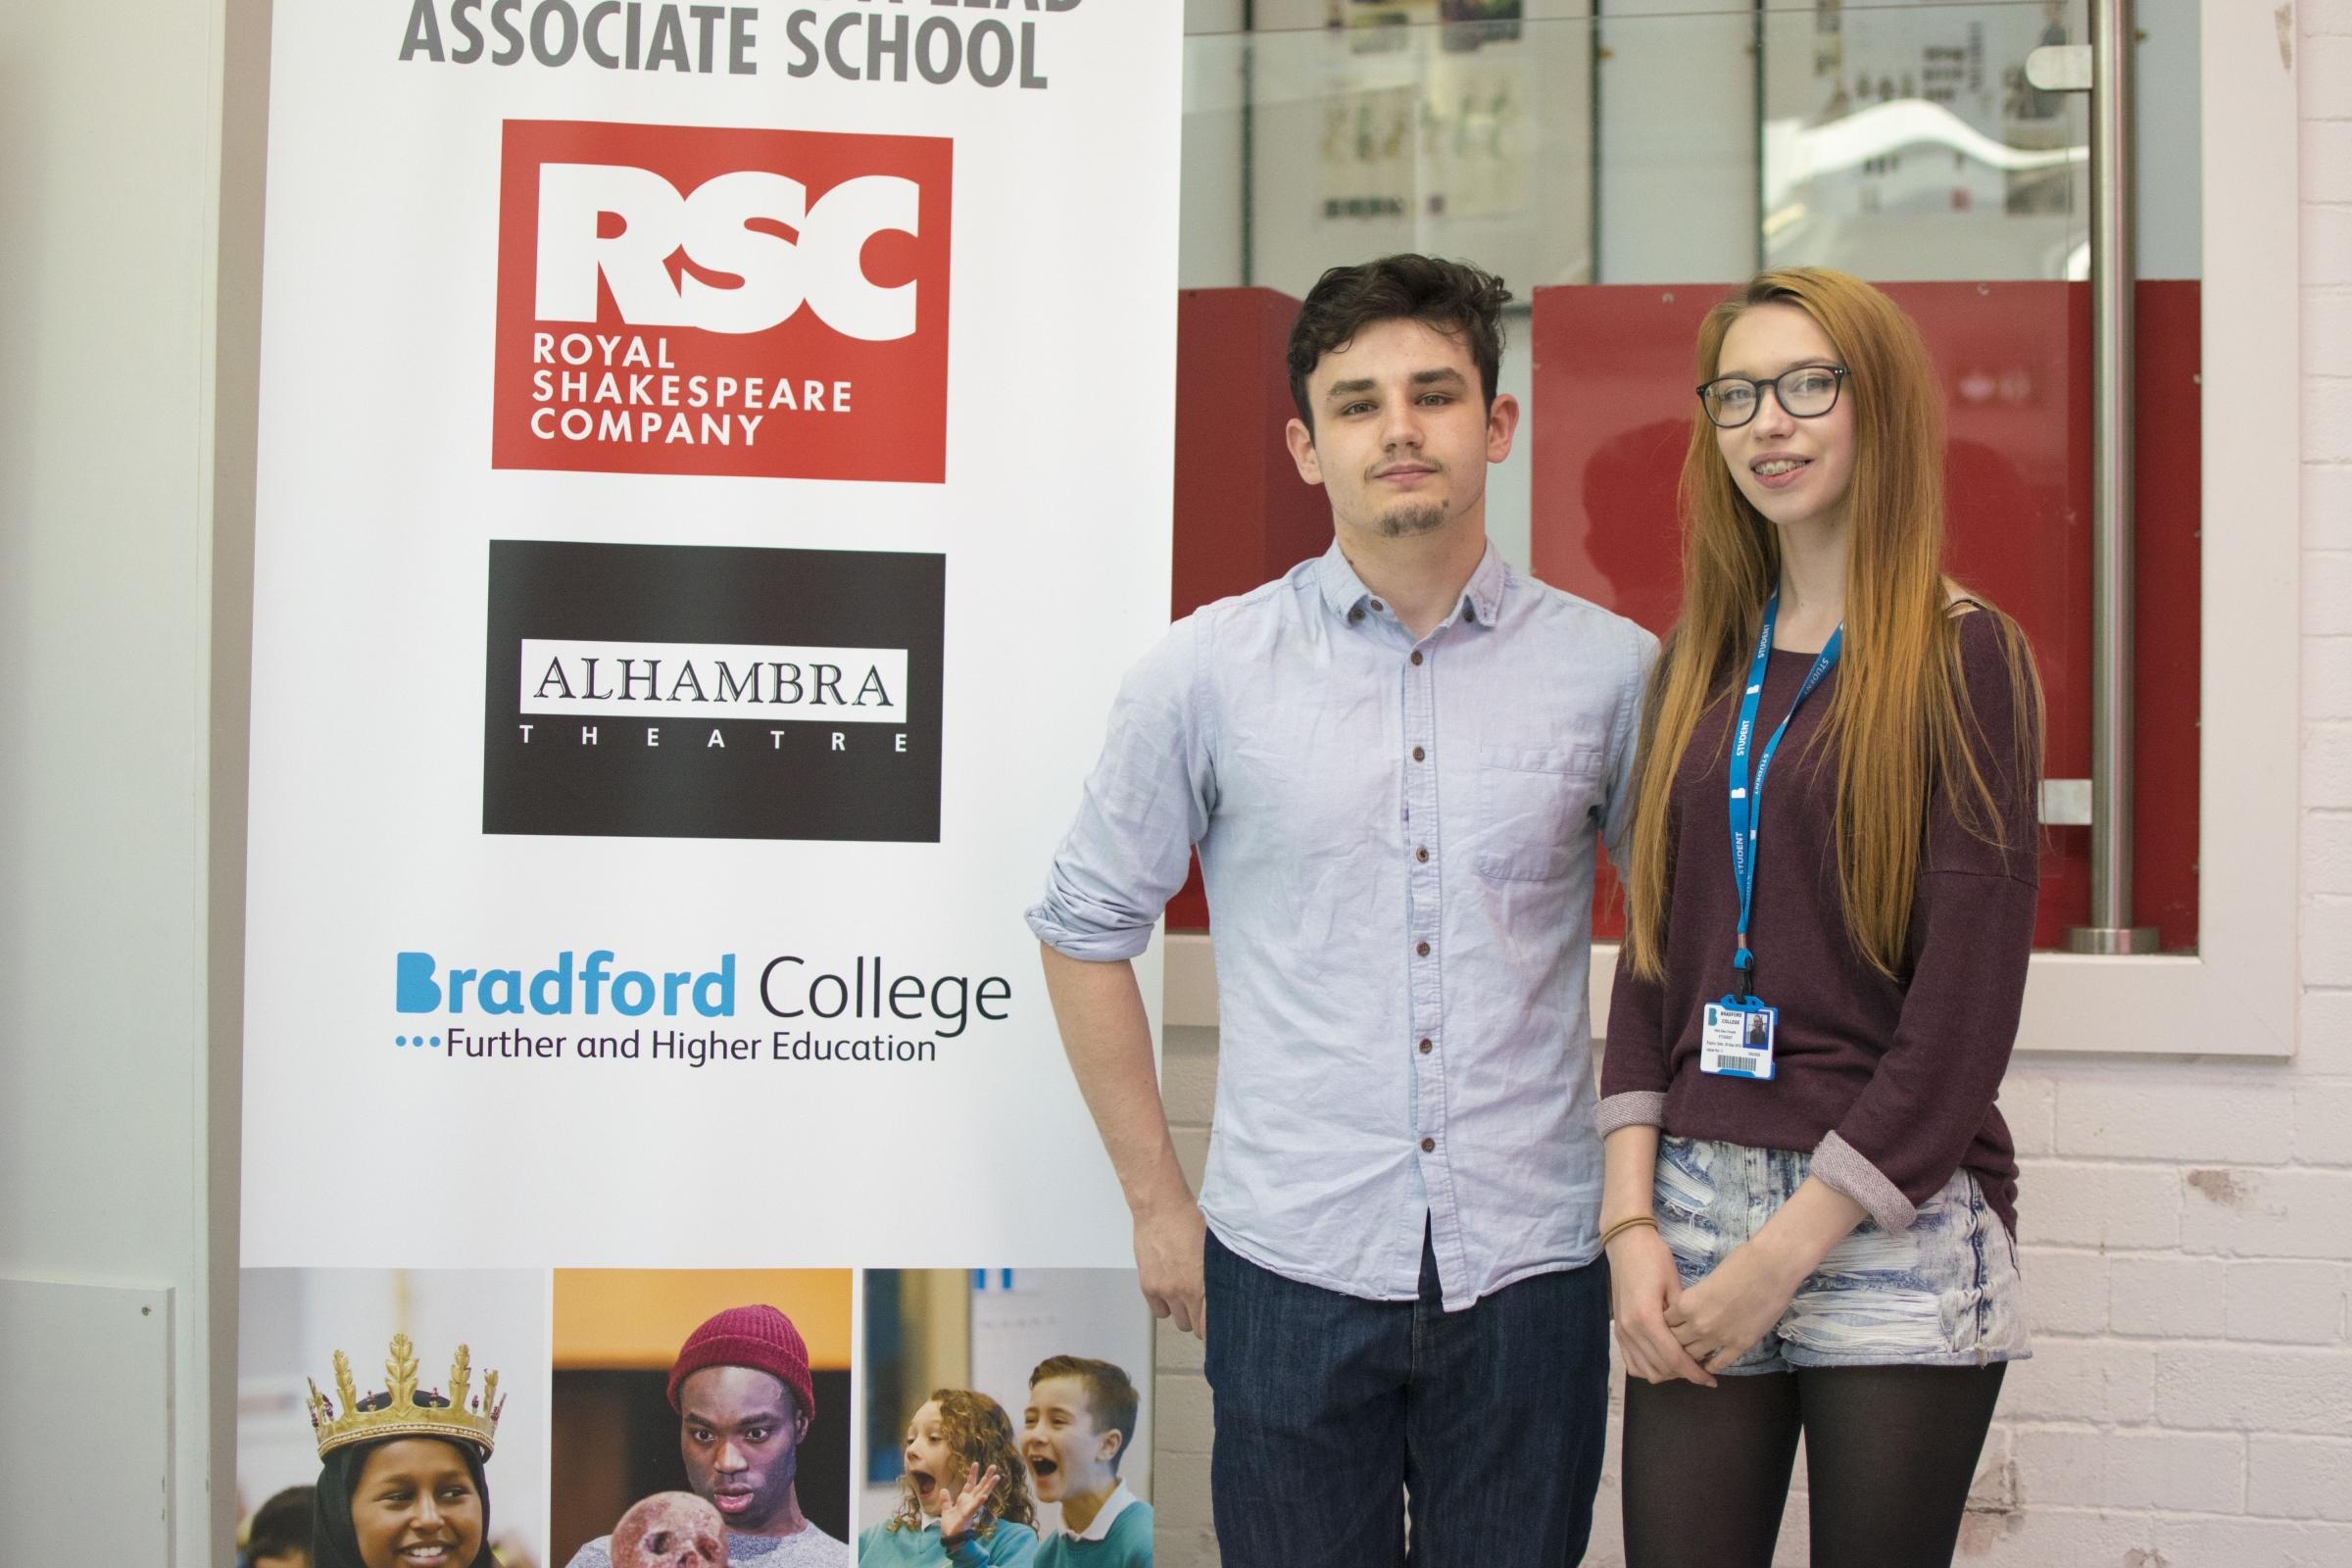 Bradford College students Bailay Illingworth and Ellen O'Keeffe have been working with the Royal Shakespeare Company